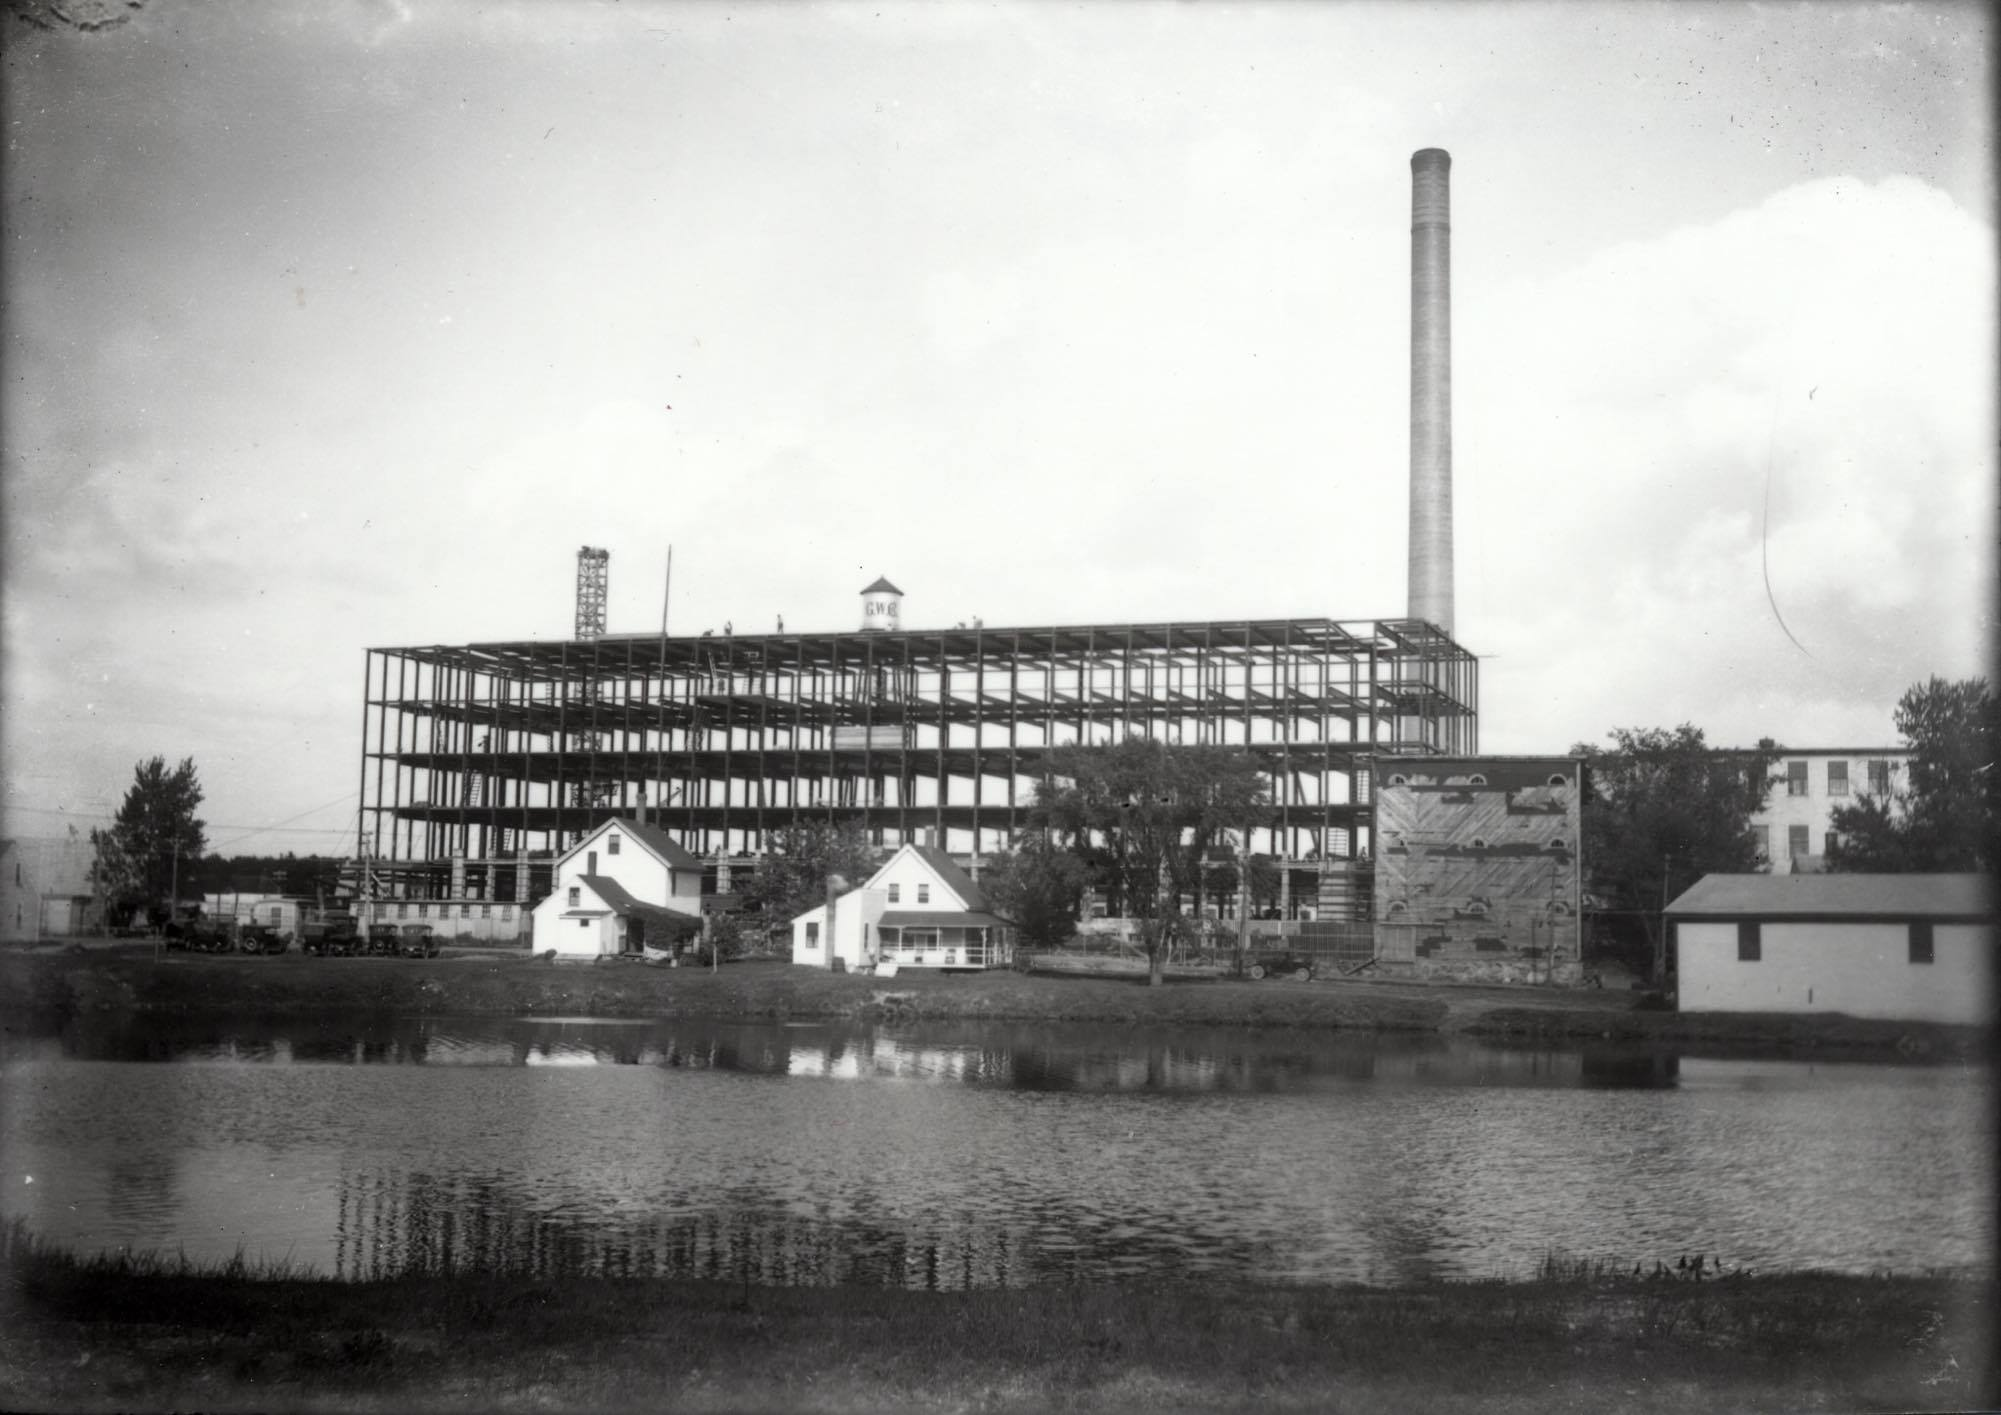 Goodall Worsted Mill under constructoin, Sept. 16, 1922. (Sanford-Springvale Historical Society)